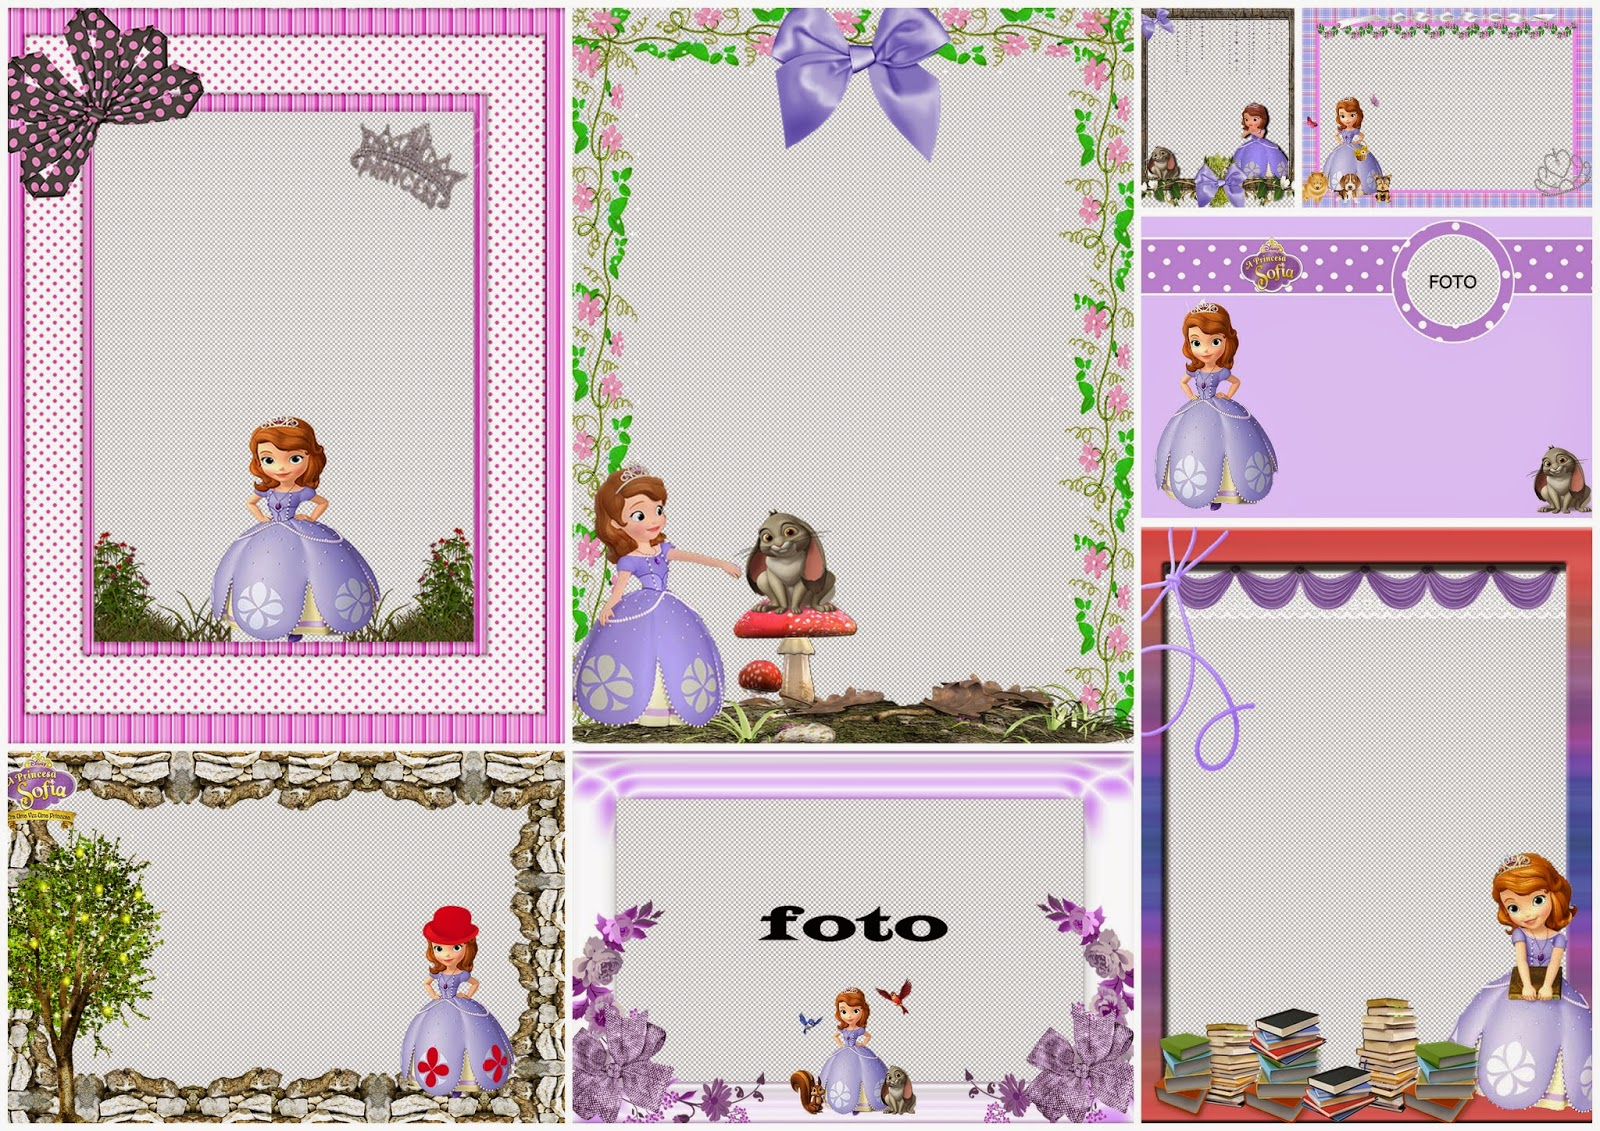 Sofia the First Free Printable Invitations or Photo Frames. | Oh My ...